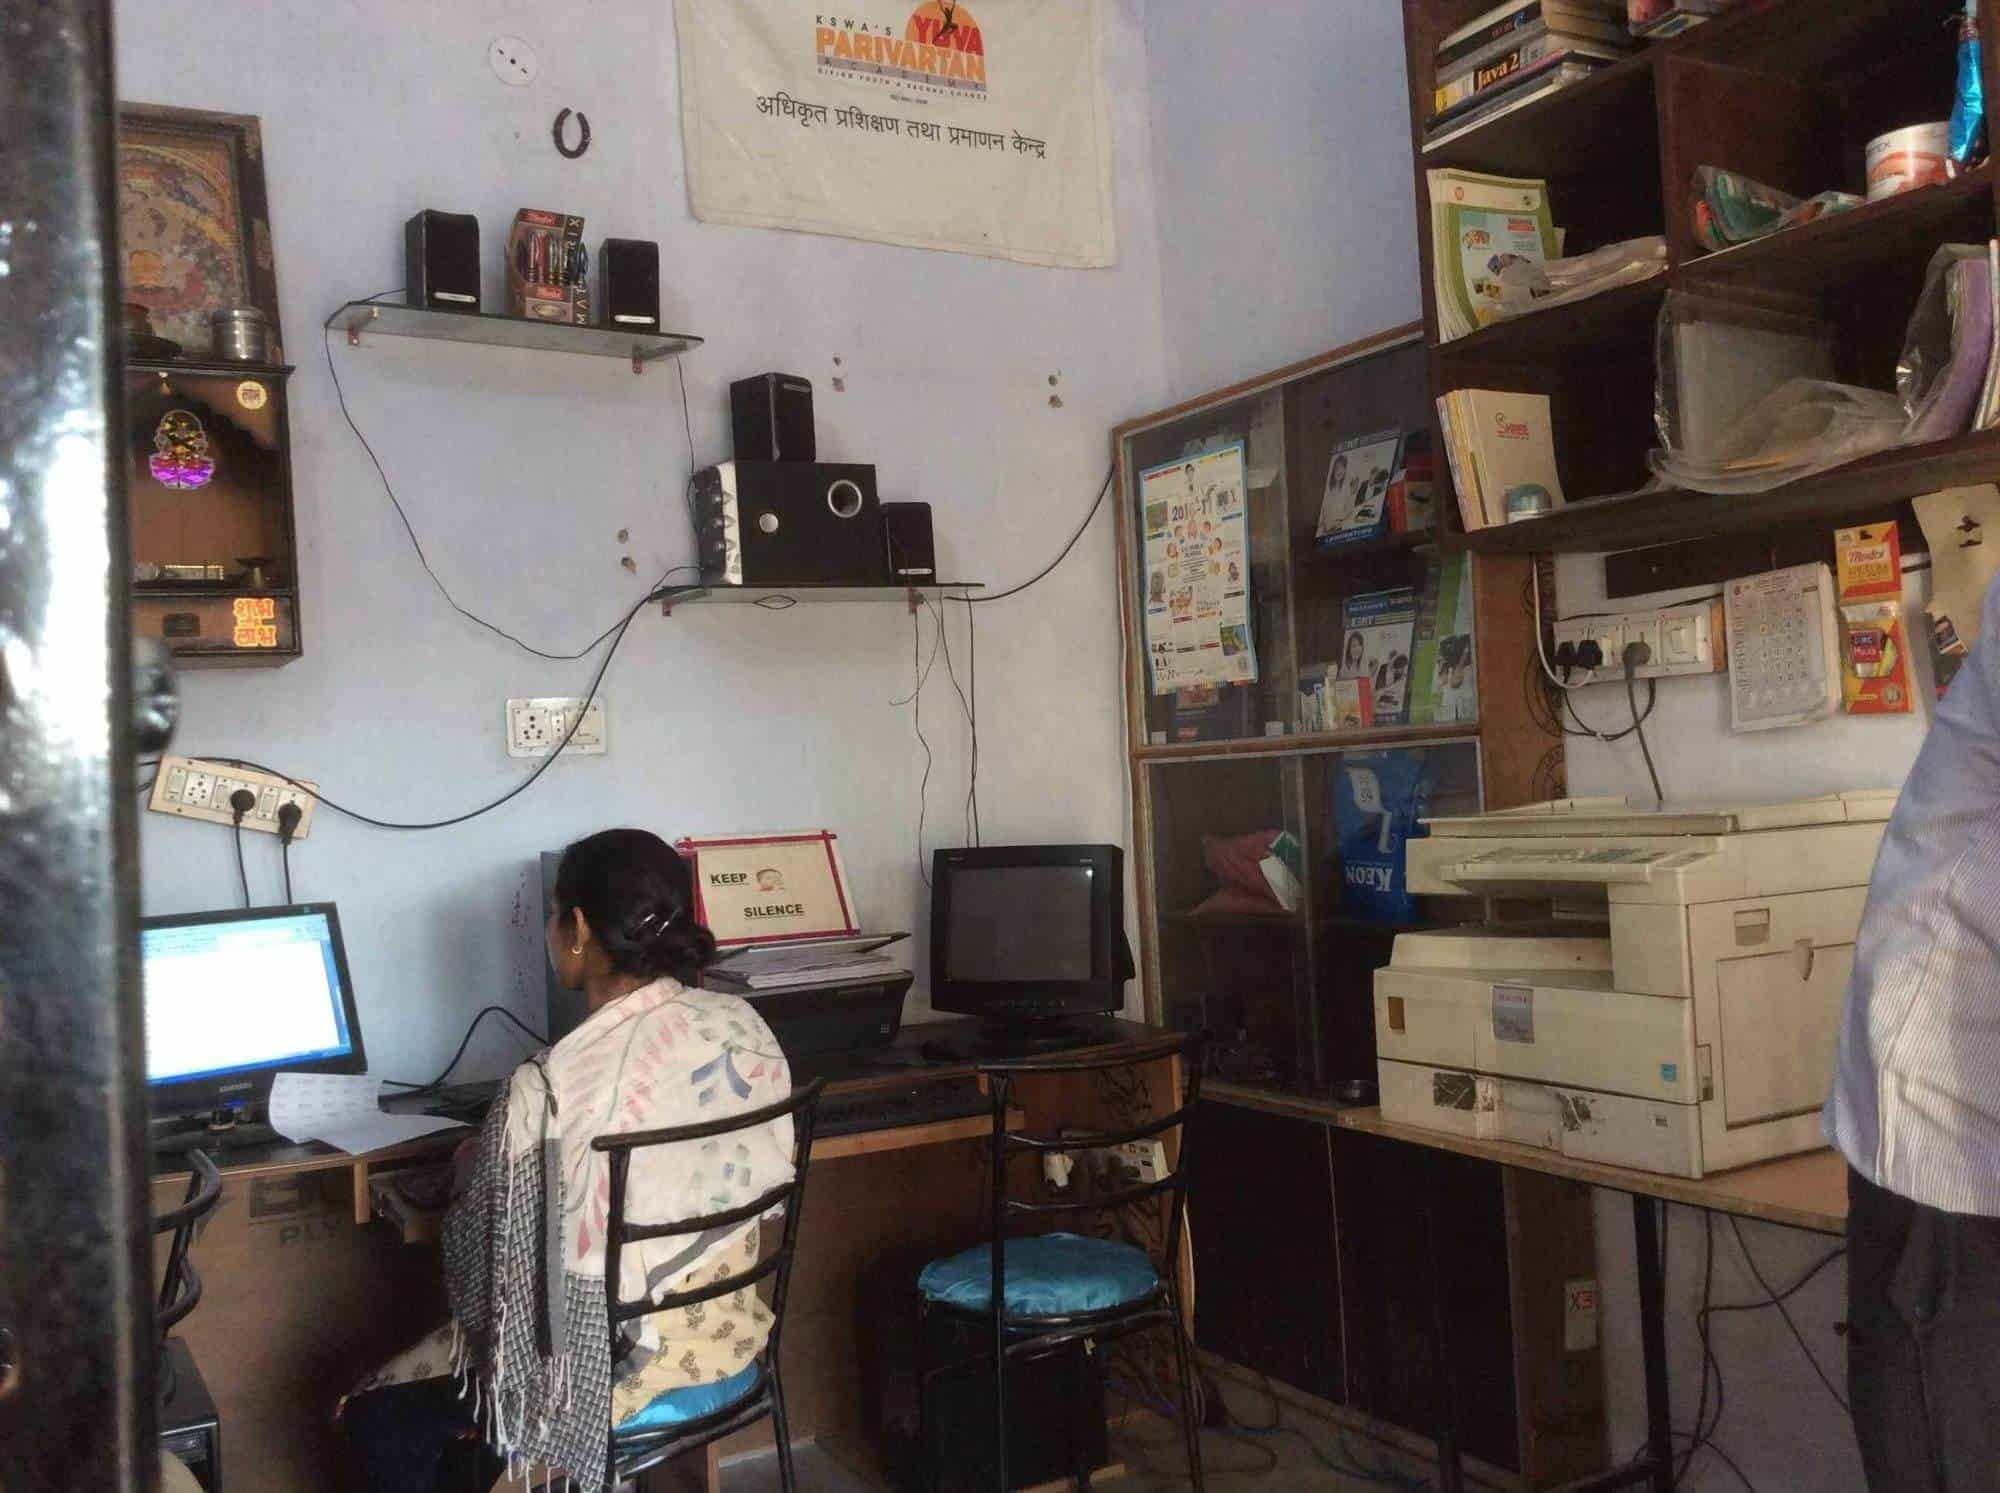 R M Cyber Cafe Photos, Sanganer, Jaipur- Pictures & Images